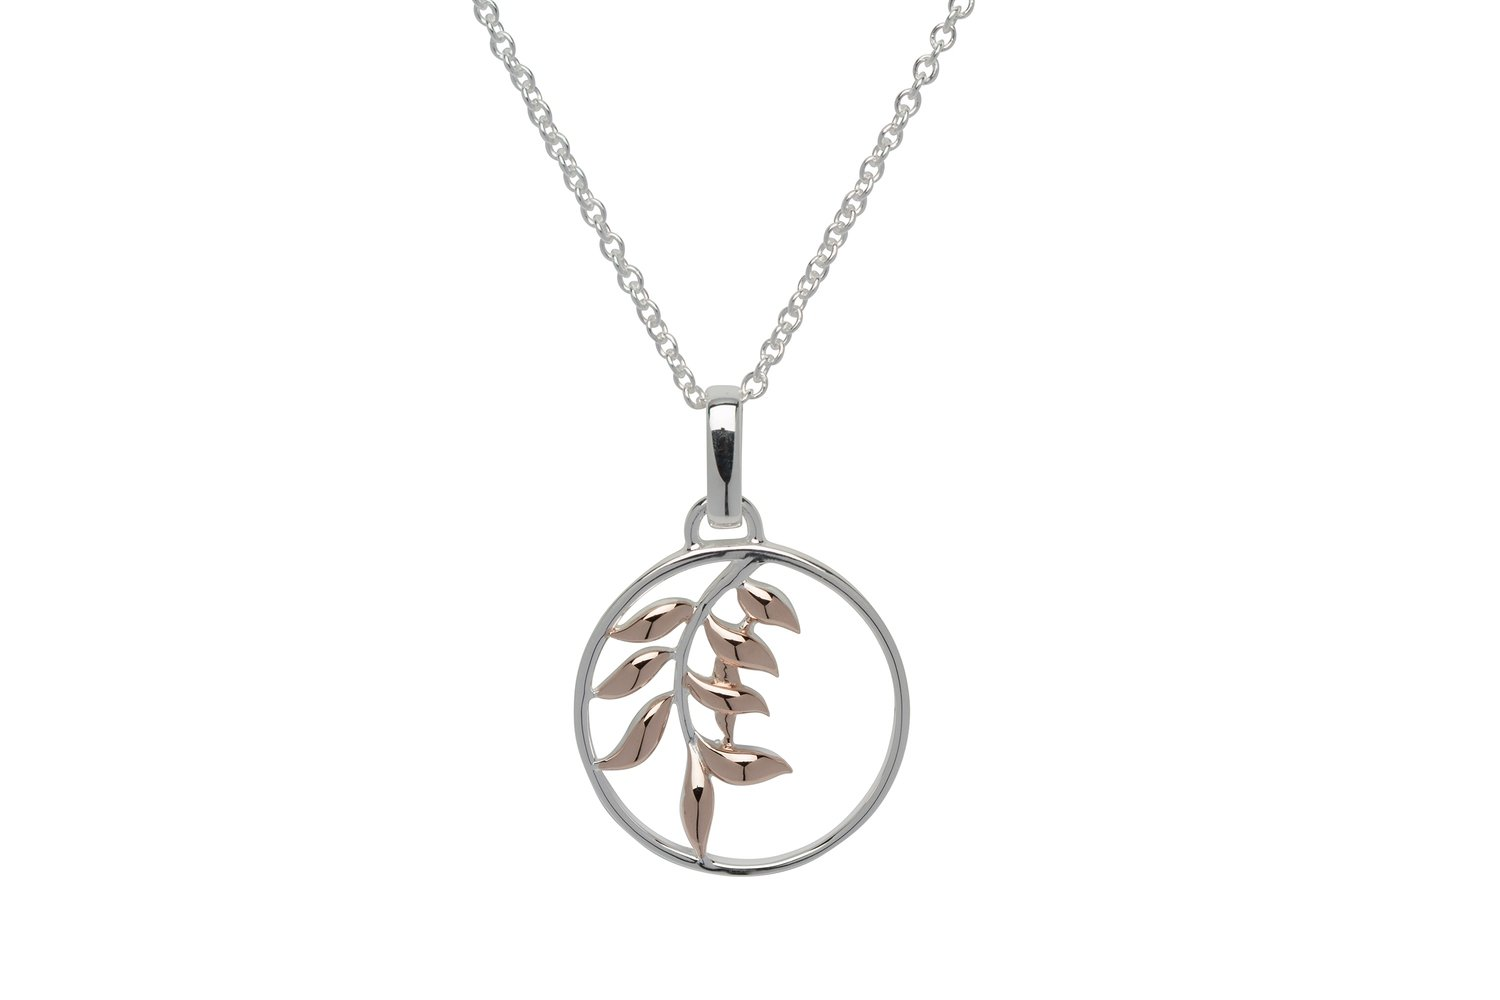 Unique & Co Silver and Rose Gold Leaf Circle Necklace